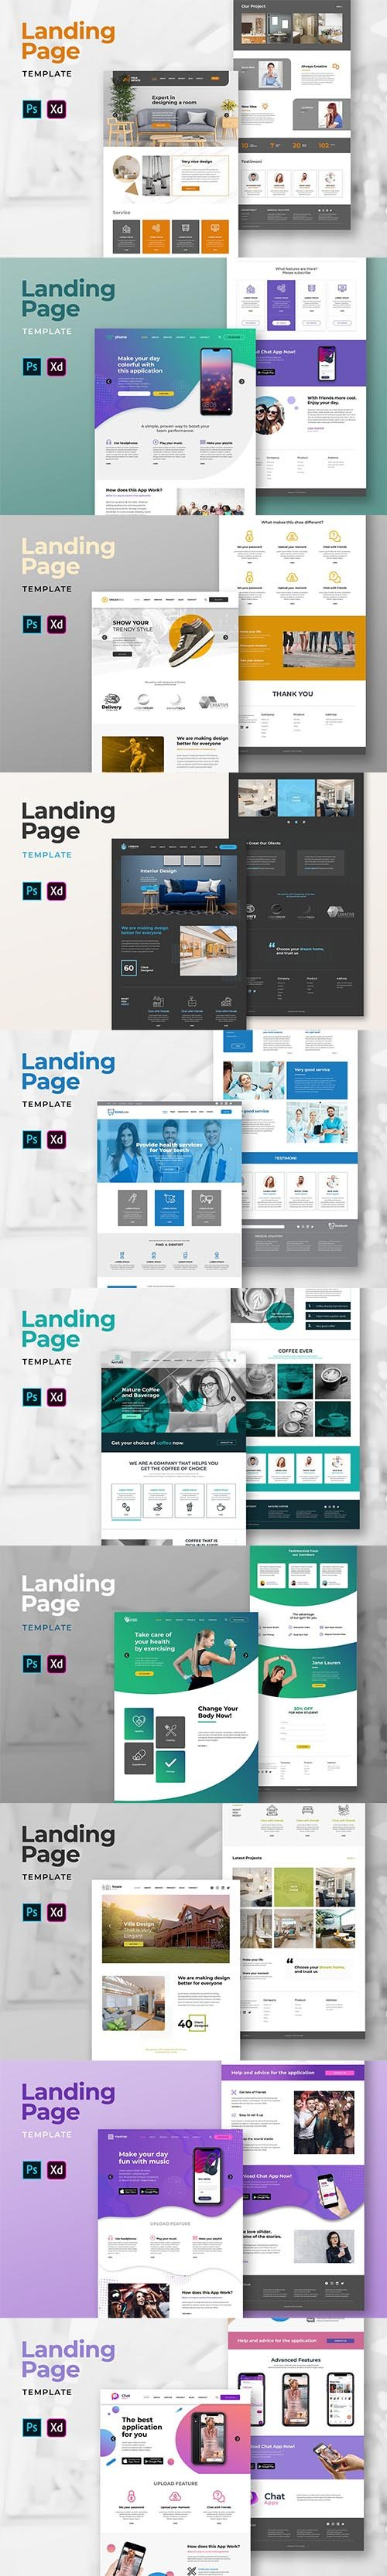 10 Landing Pages Pack